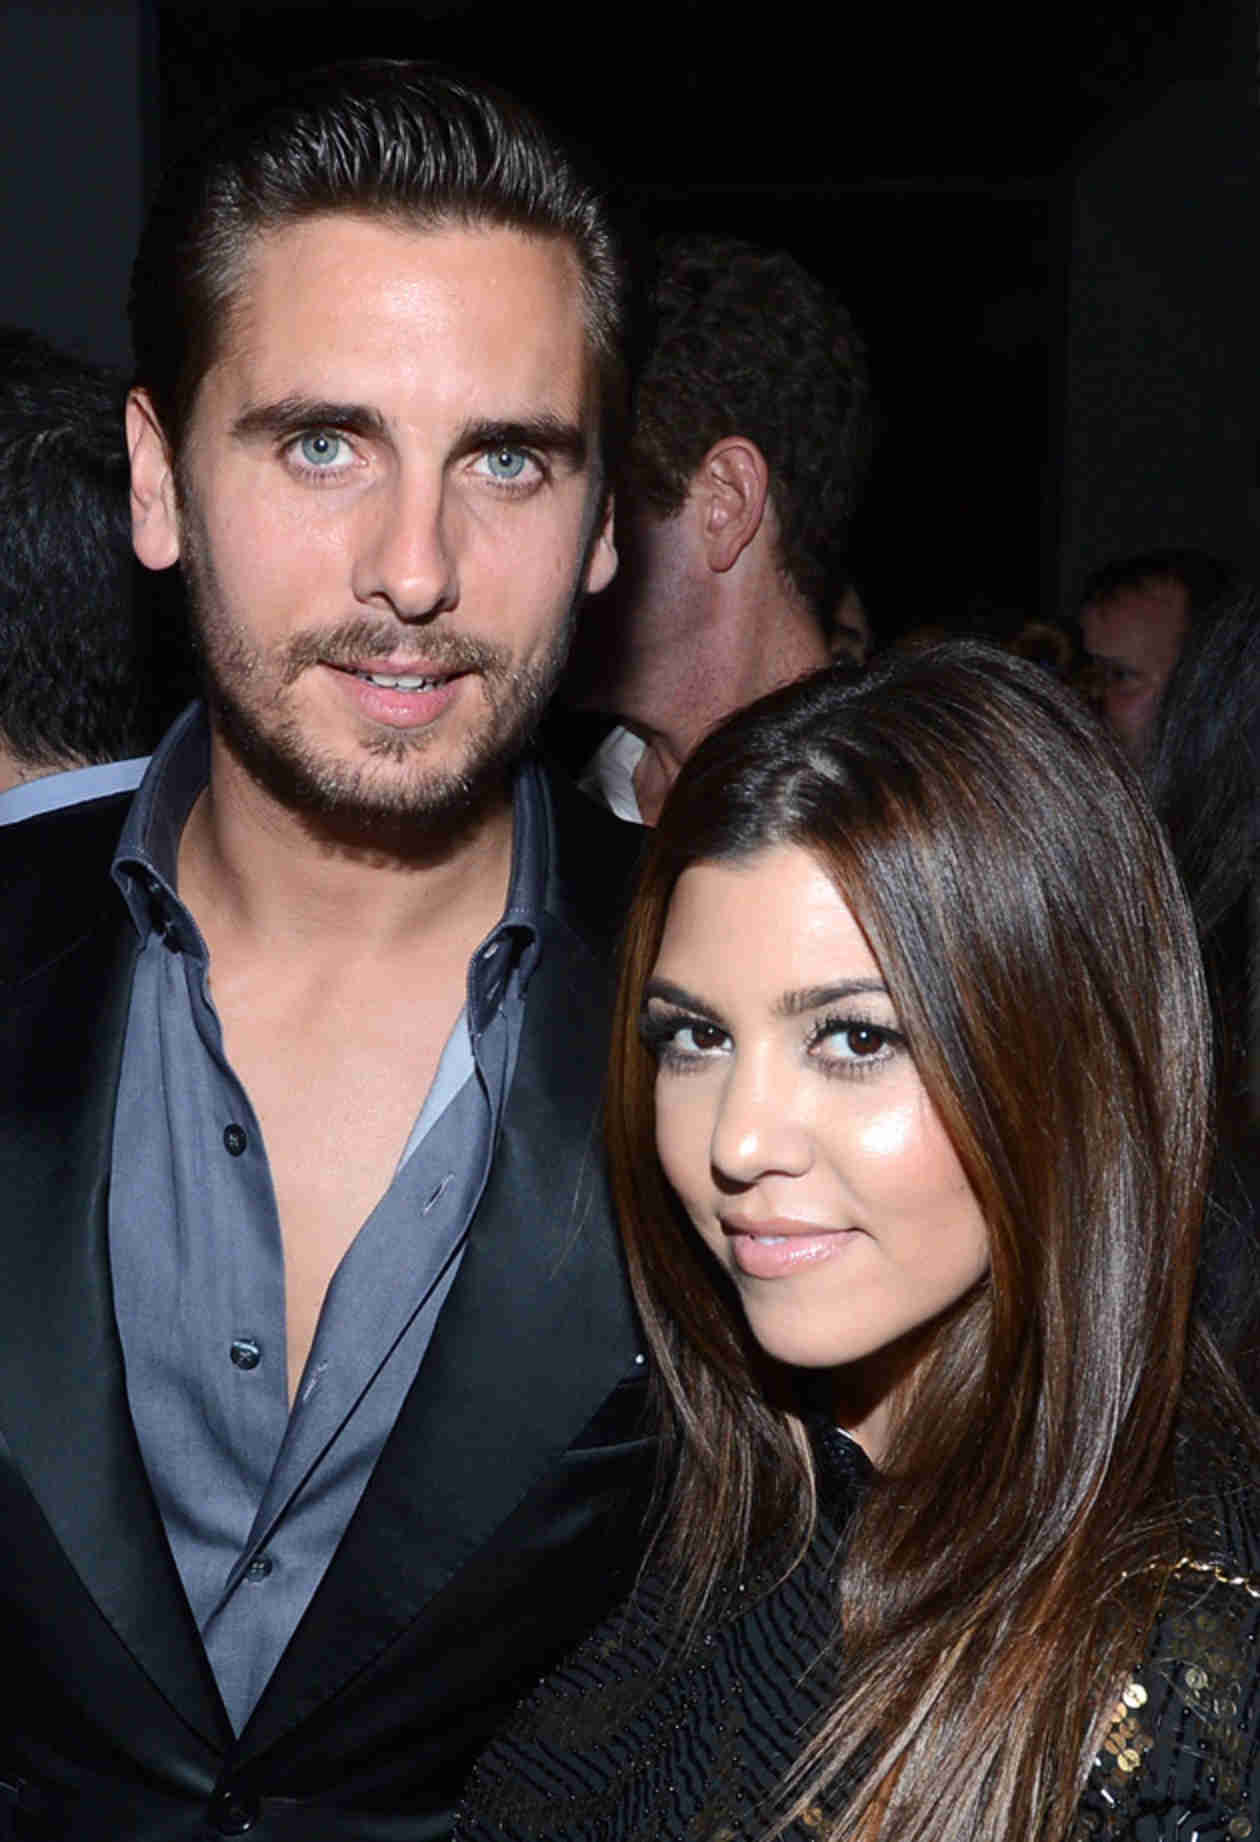 Kourtney Kardashian and Scott Disick Robbed Again, Briefcase of Cash Stolen